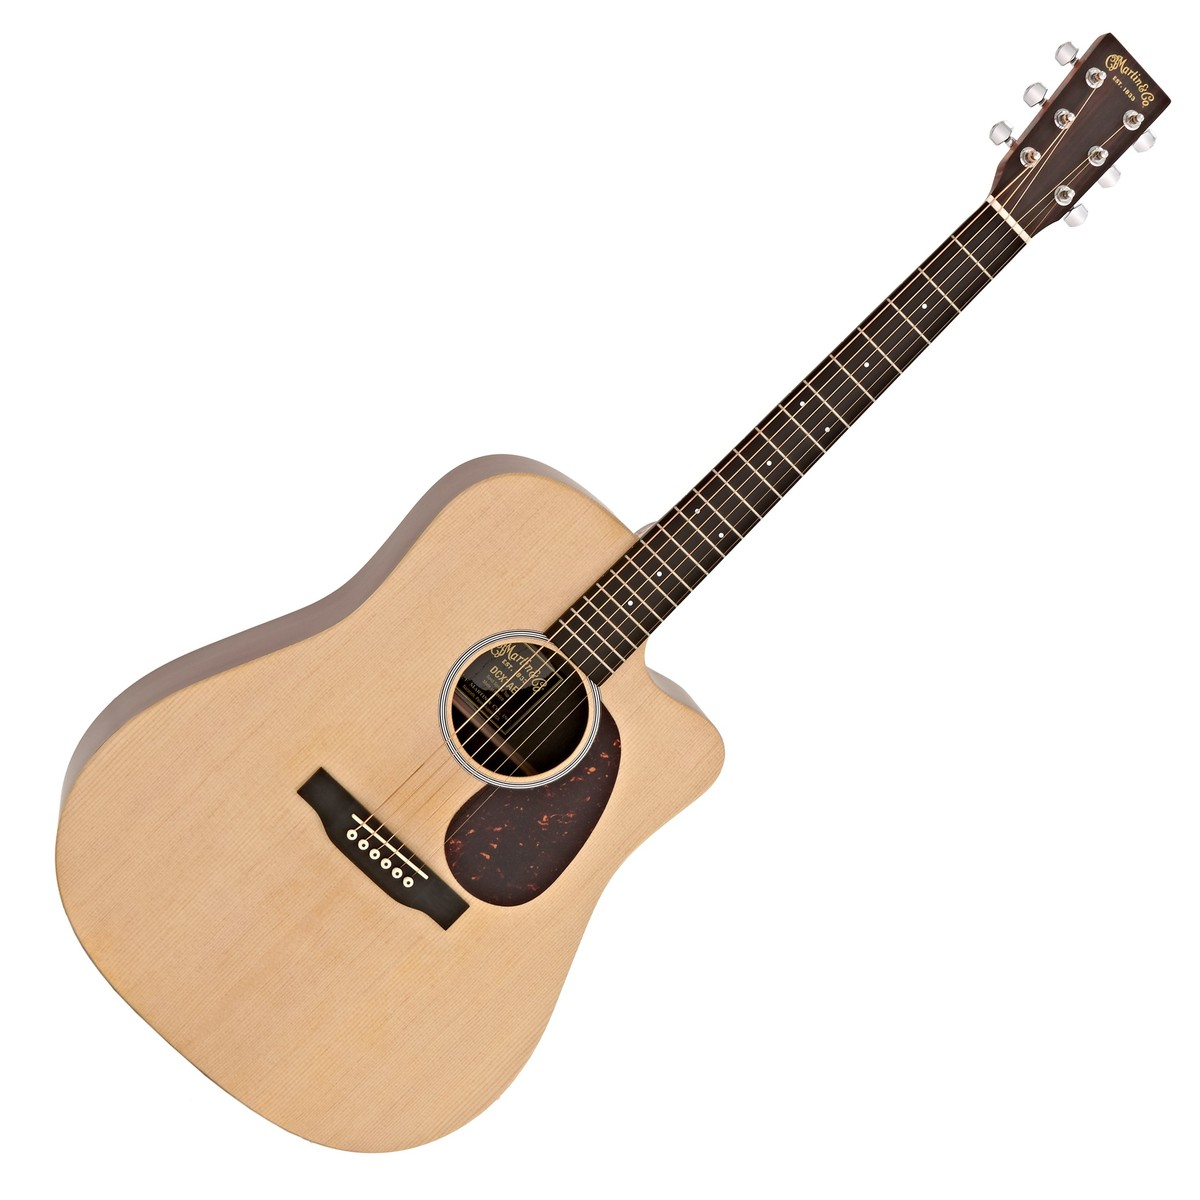 Click to view product details and reviews for Martin Dcx1ae Electro Acoustic Guitar Natural.